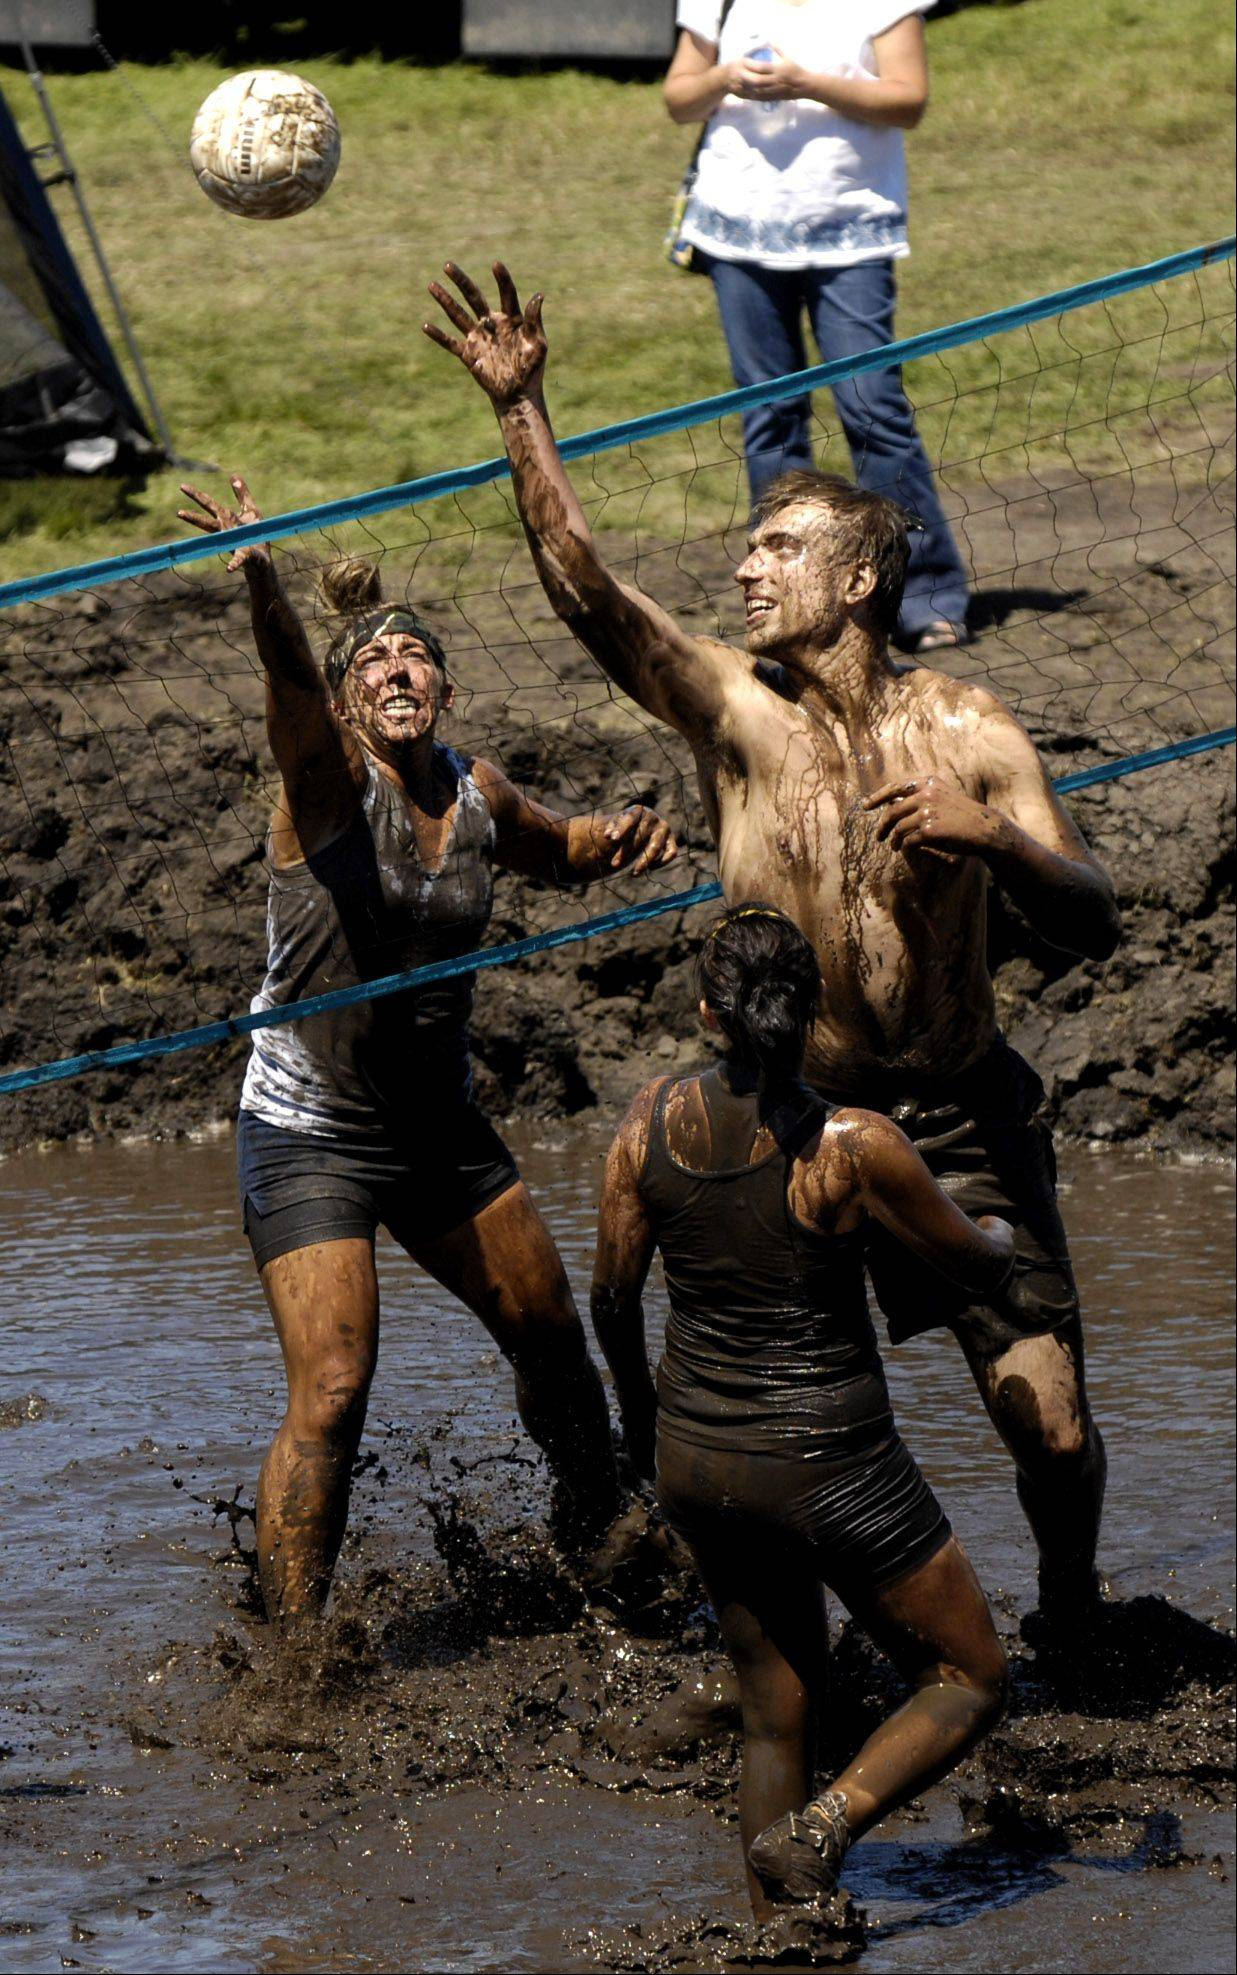 Mud volleyball players Jeff Klosinski and Heather Cornell, right, play on the final day of last year's Elburn Days at Lions Park.